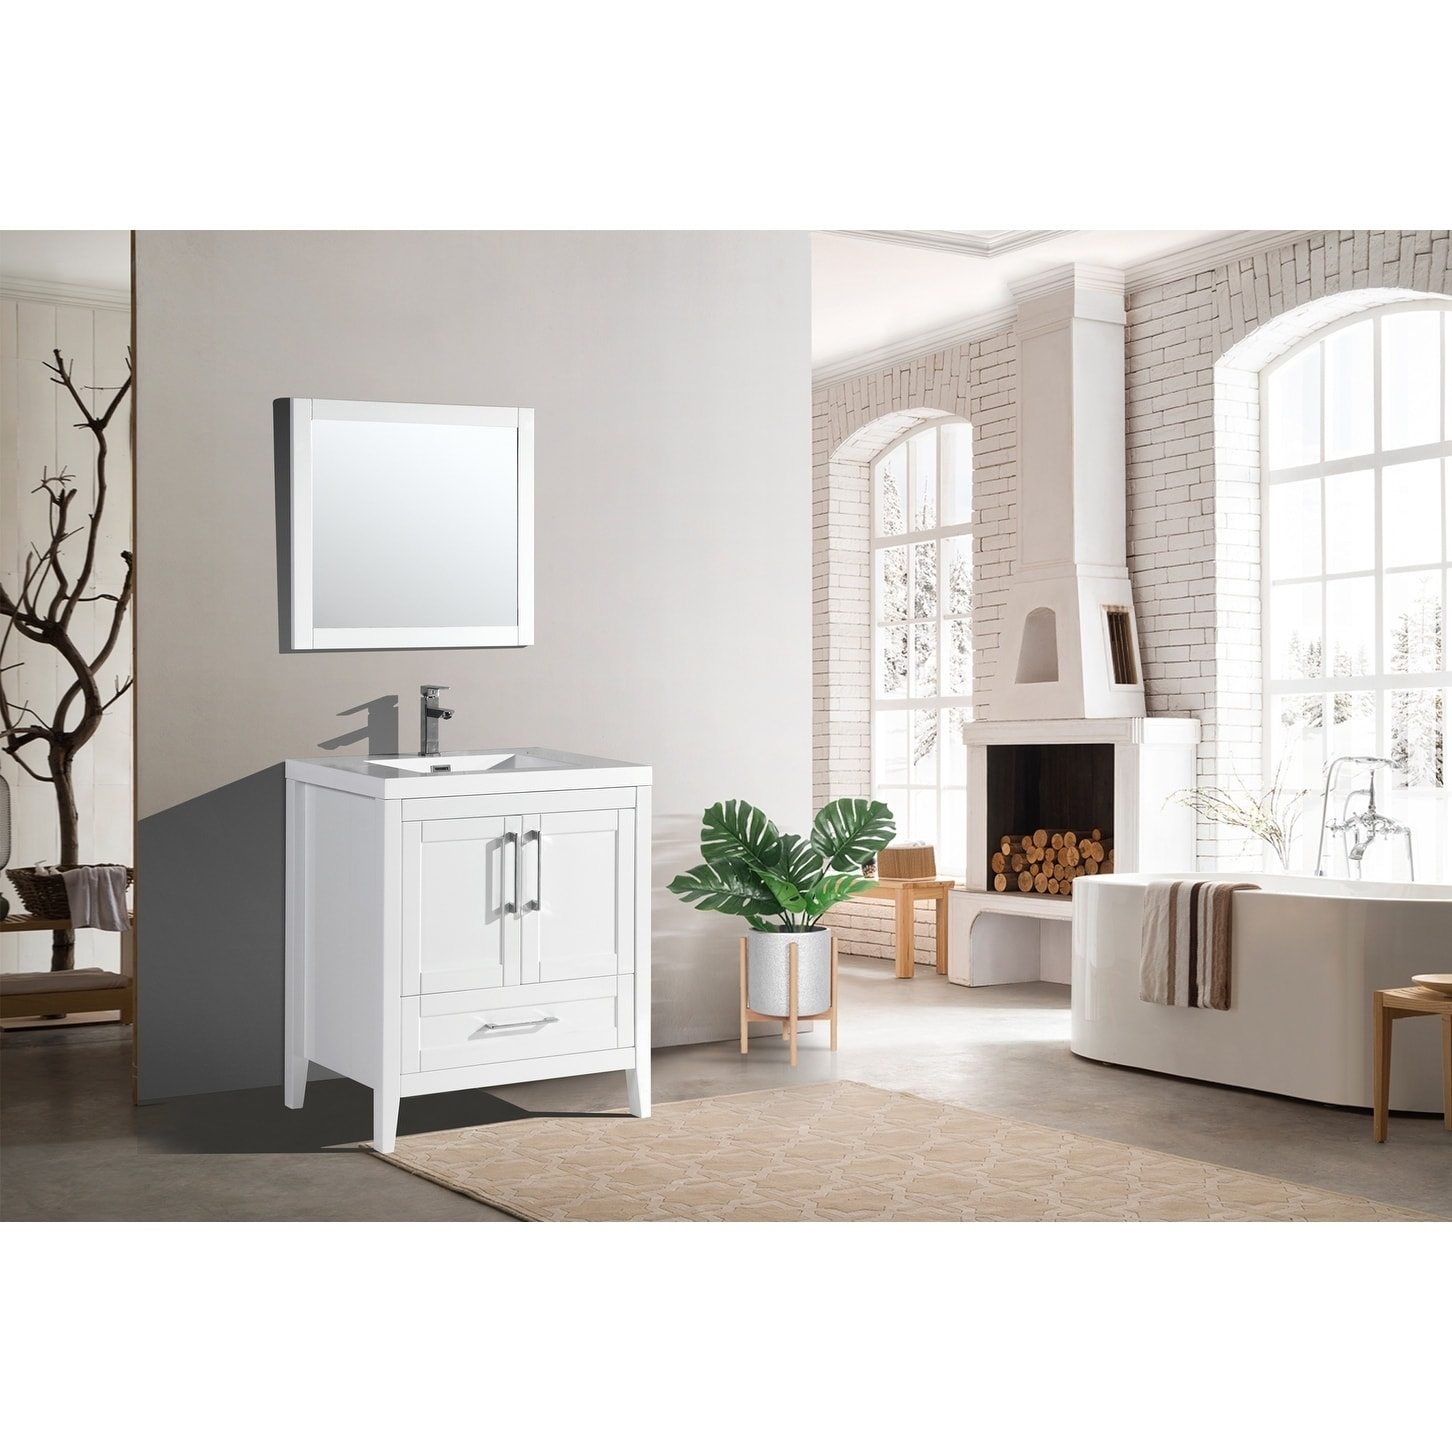 Shop The Willow Collection 30 Inch Modern Bathroom Vanity Overstock 20979058 Assembled Wood White Lacquer,Color Code Personality Test Green